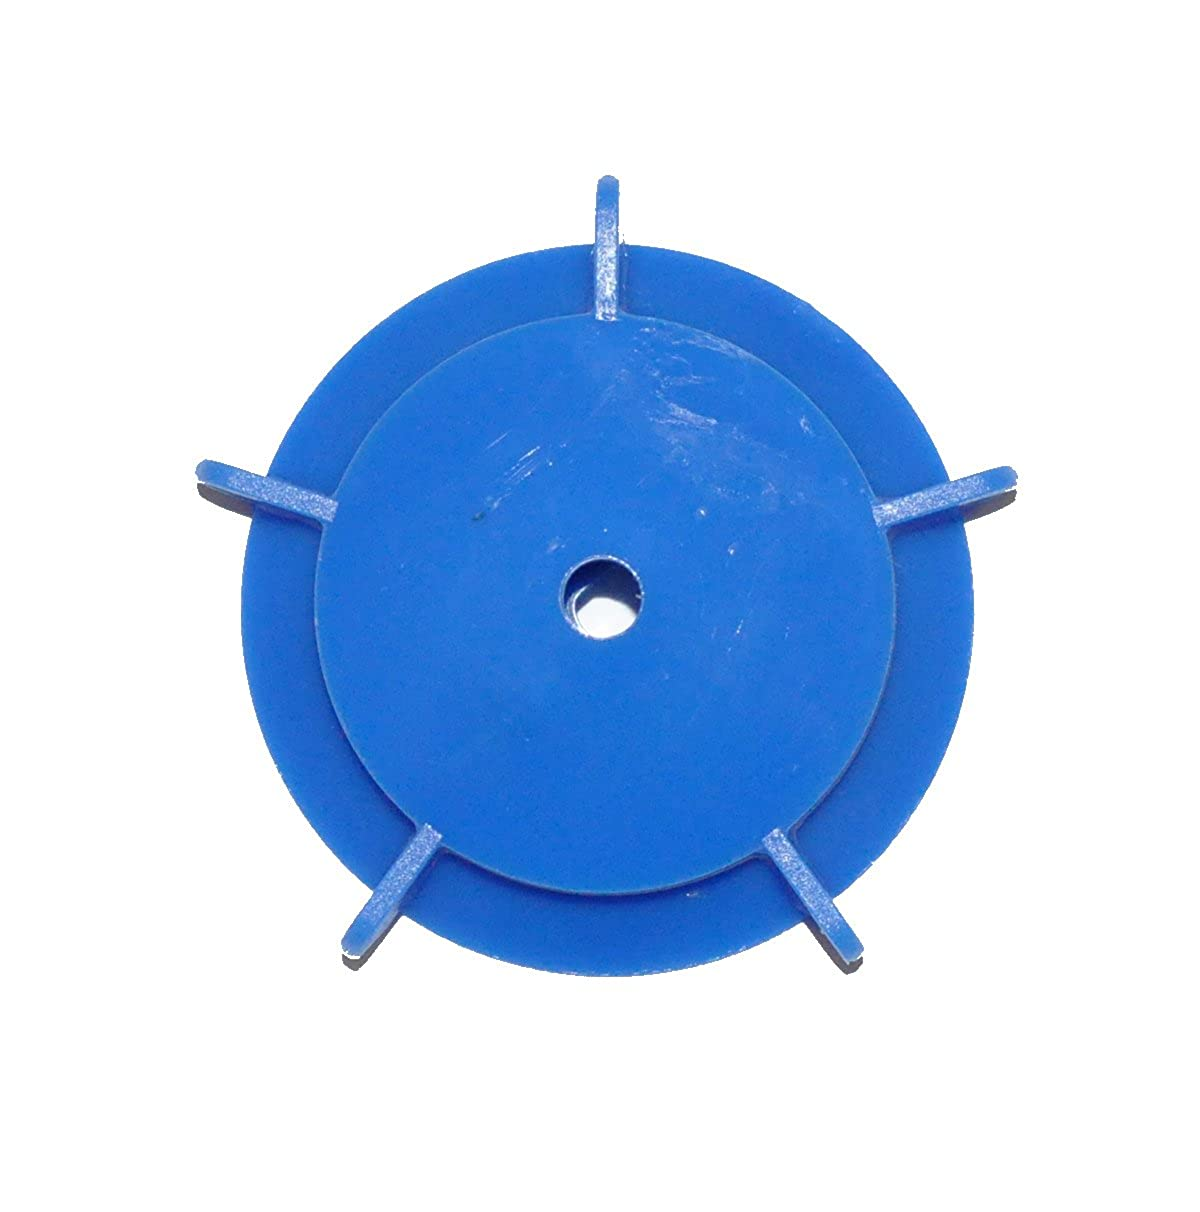 3Skull Paintball Halo B Drive Cone Delrin - Blue